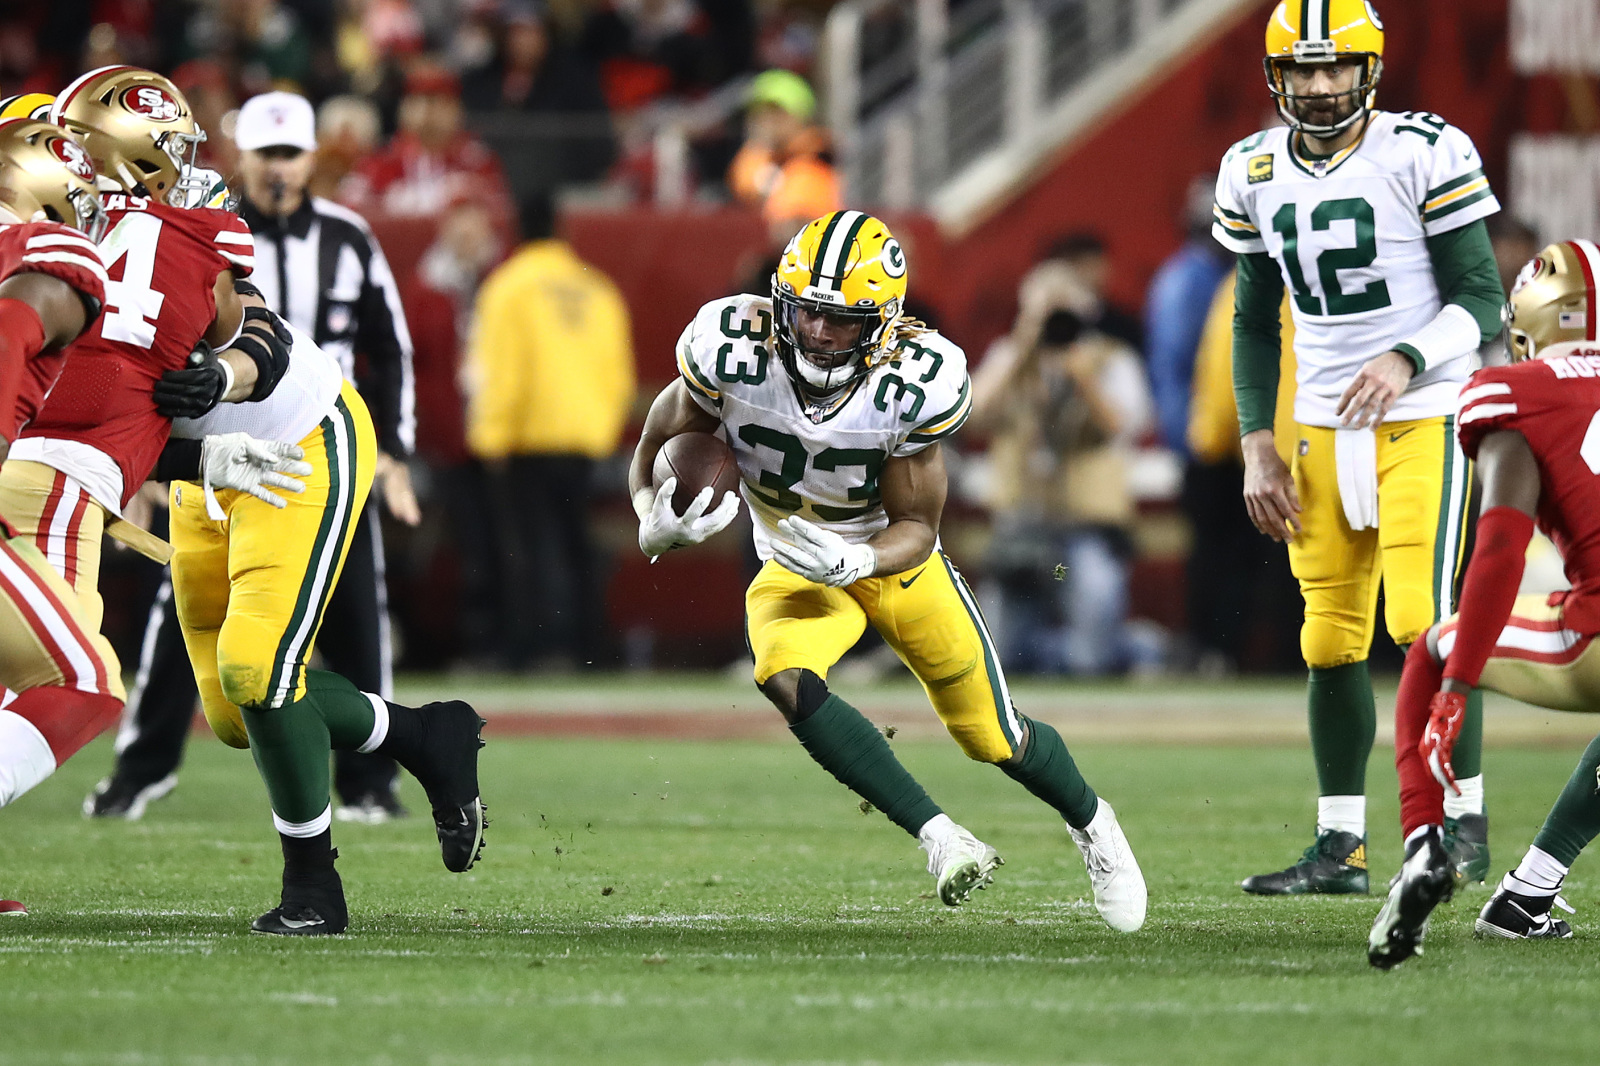 Packers: Emphasis on offense can help Green Bay reach next level